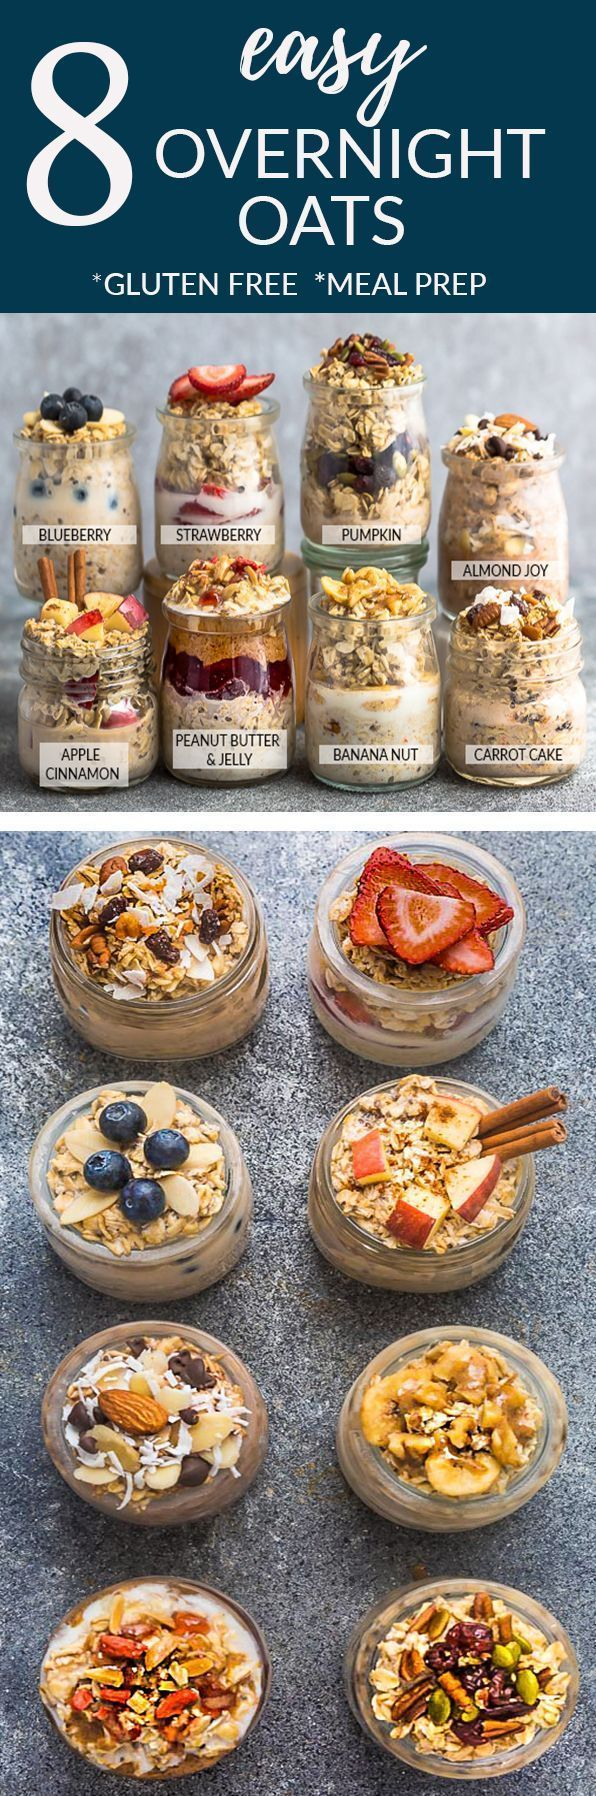 8 Best Easy Overnight Oats with tips on how to cook the perfect simple oatmeal for busy mornings. Healthy, delicious, gluten free & easy to customize with your favorite flavors. Make ahead the night before for meal prep Sunday with less than 5 minutes. Almond Joy, Apple Cinnamon, Banana Nut, Blueberry, Carrot Cake, Peanut Butter & Jelly, Pumpkin Cranberry and Strawberry. #overnightoats #oatmeal #breakfast #glutenfree #recipe #healthy #vegan #nocook #overnightoats #oats #howto #healthyfoodprep